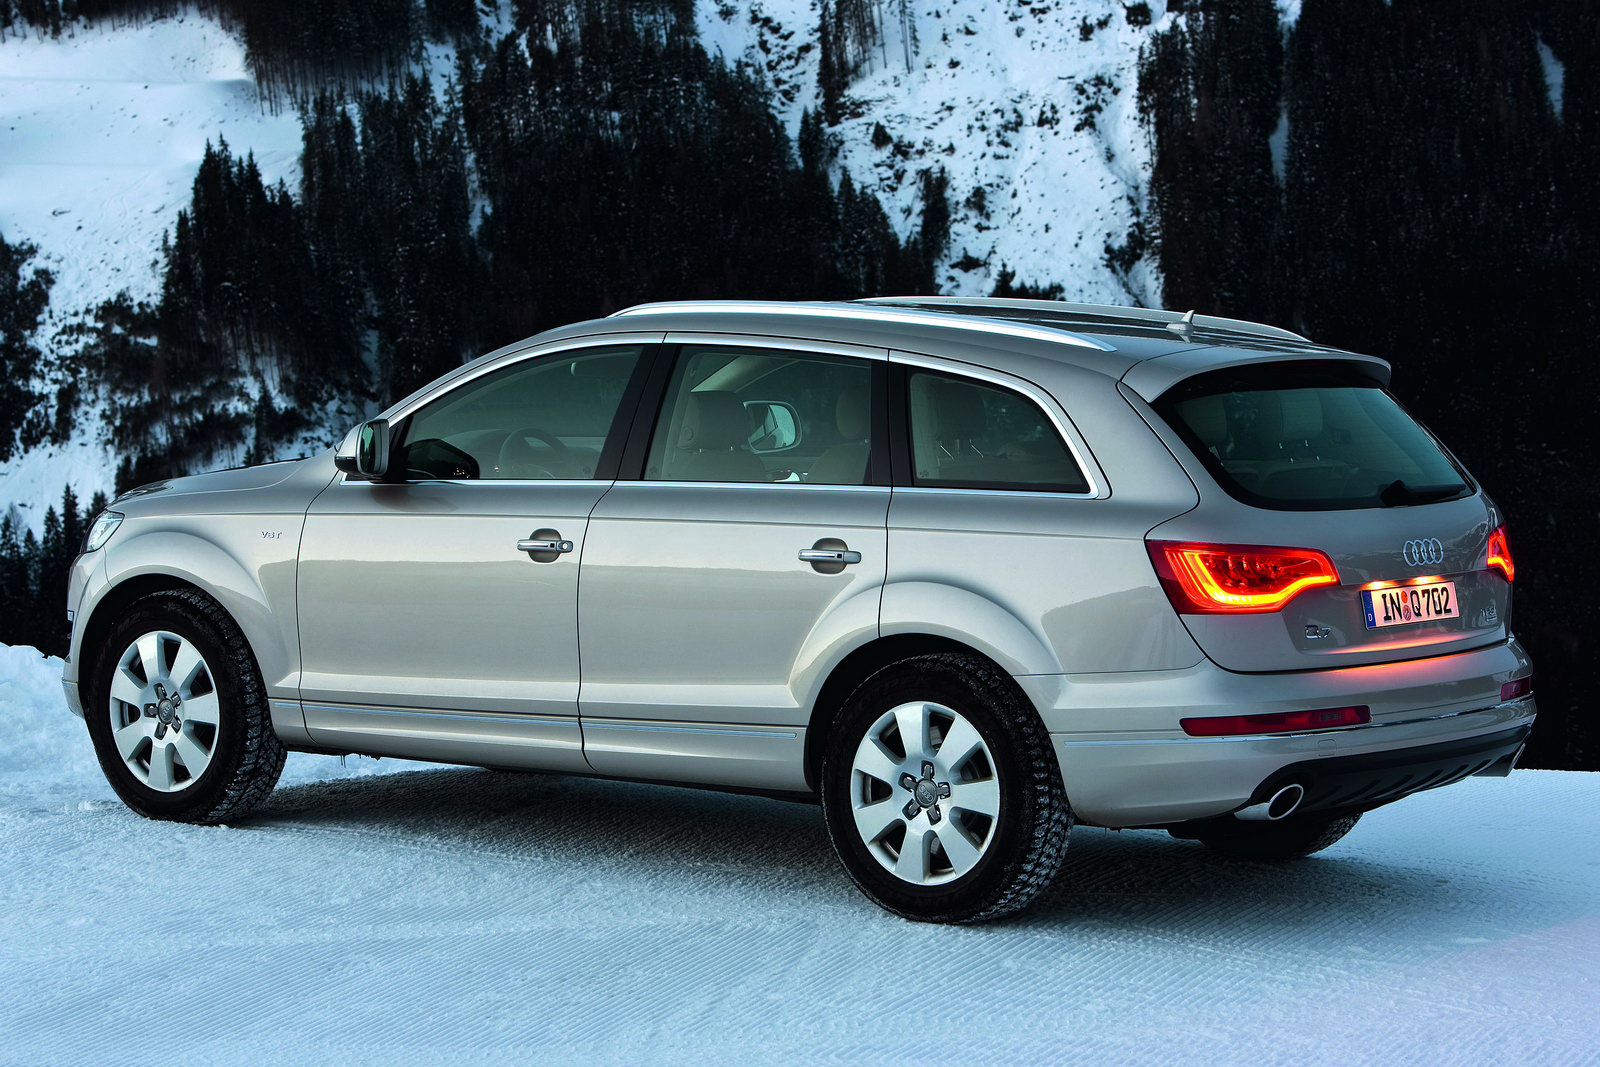 2011 Audi Q7 SUV 1 2011 Audi Q7 SUV Installed With NewV6 Engines, 8 Speed Transmission and Supercharged TFSI